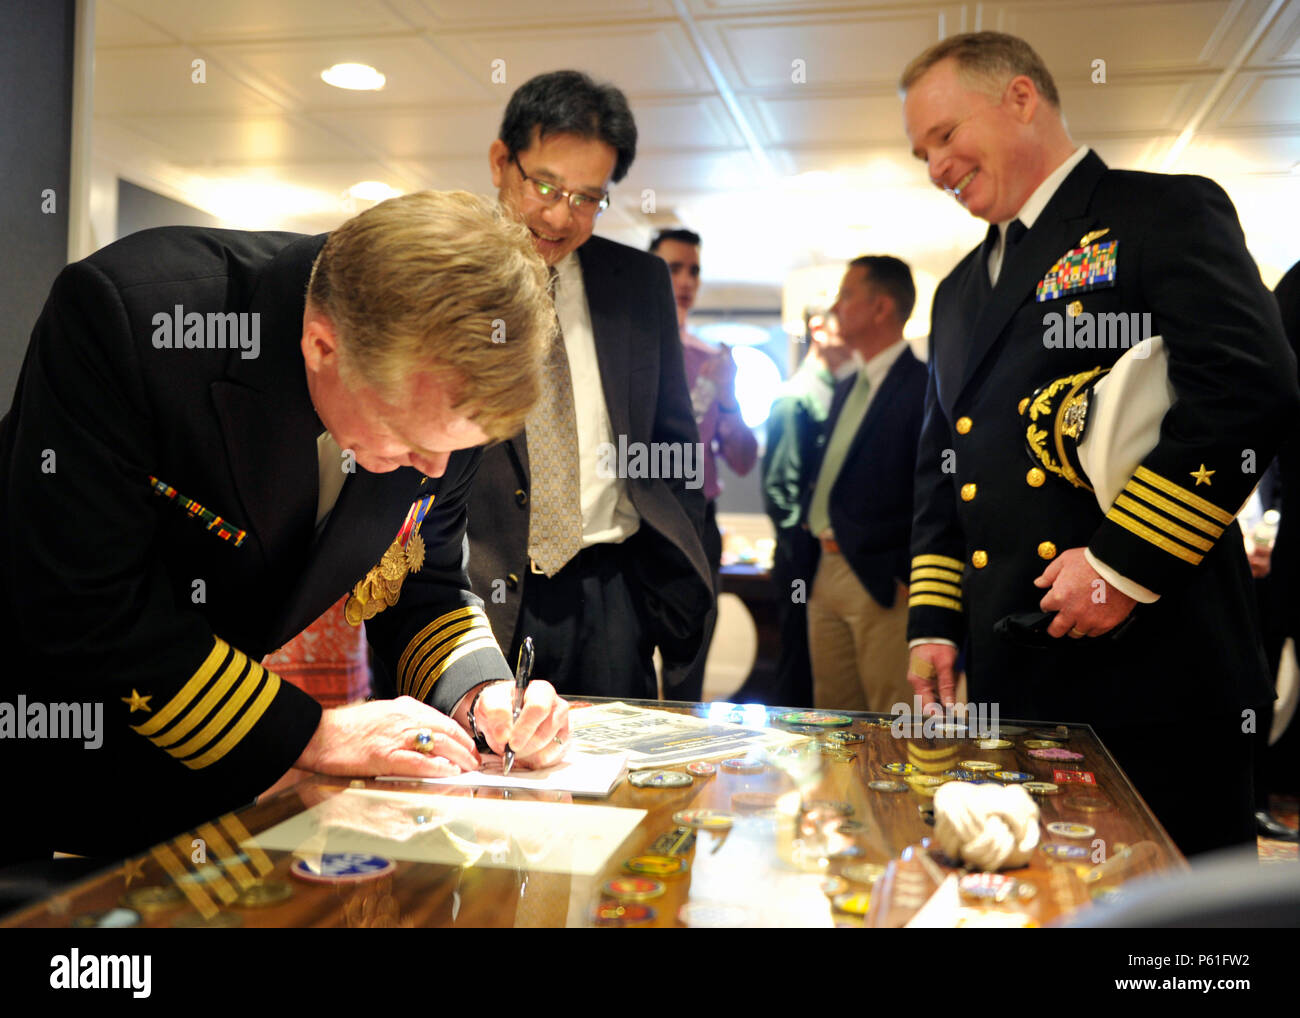 160408-N-OG138-081 NEWPORT NEWS, Va., (April 8, 2016) Capt. Richard McCormack signs a program for a distinguished guest before Pre-Commissioning Unit Gerald R. Ford's (CVN 78) change of command in the ship's hanger bay. Ford is the first of a new class of aircraft carriers currently under construction by Huntington Ingalls Newport News Shipbuilding. (U.S. Navy photo by Mass Communication Specialist 3rd Class Matthew R. Fairchild/Released) - Stock Image